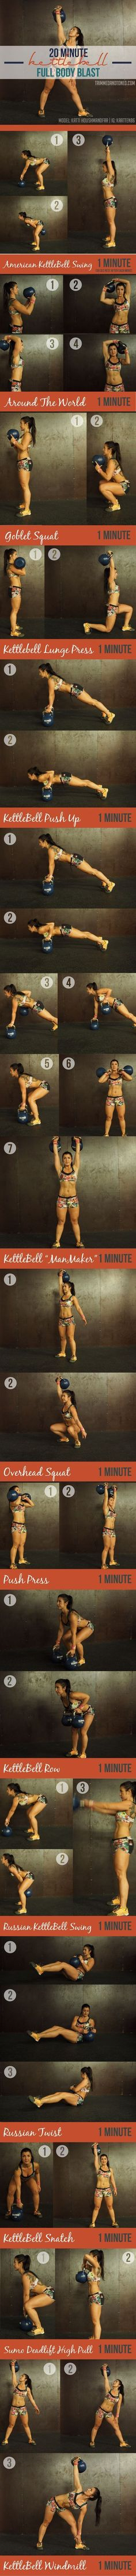 20 Minute Full Body Fat Loss Kettlebell Workout Circuit! Find more like this at gympins.com20 M